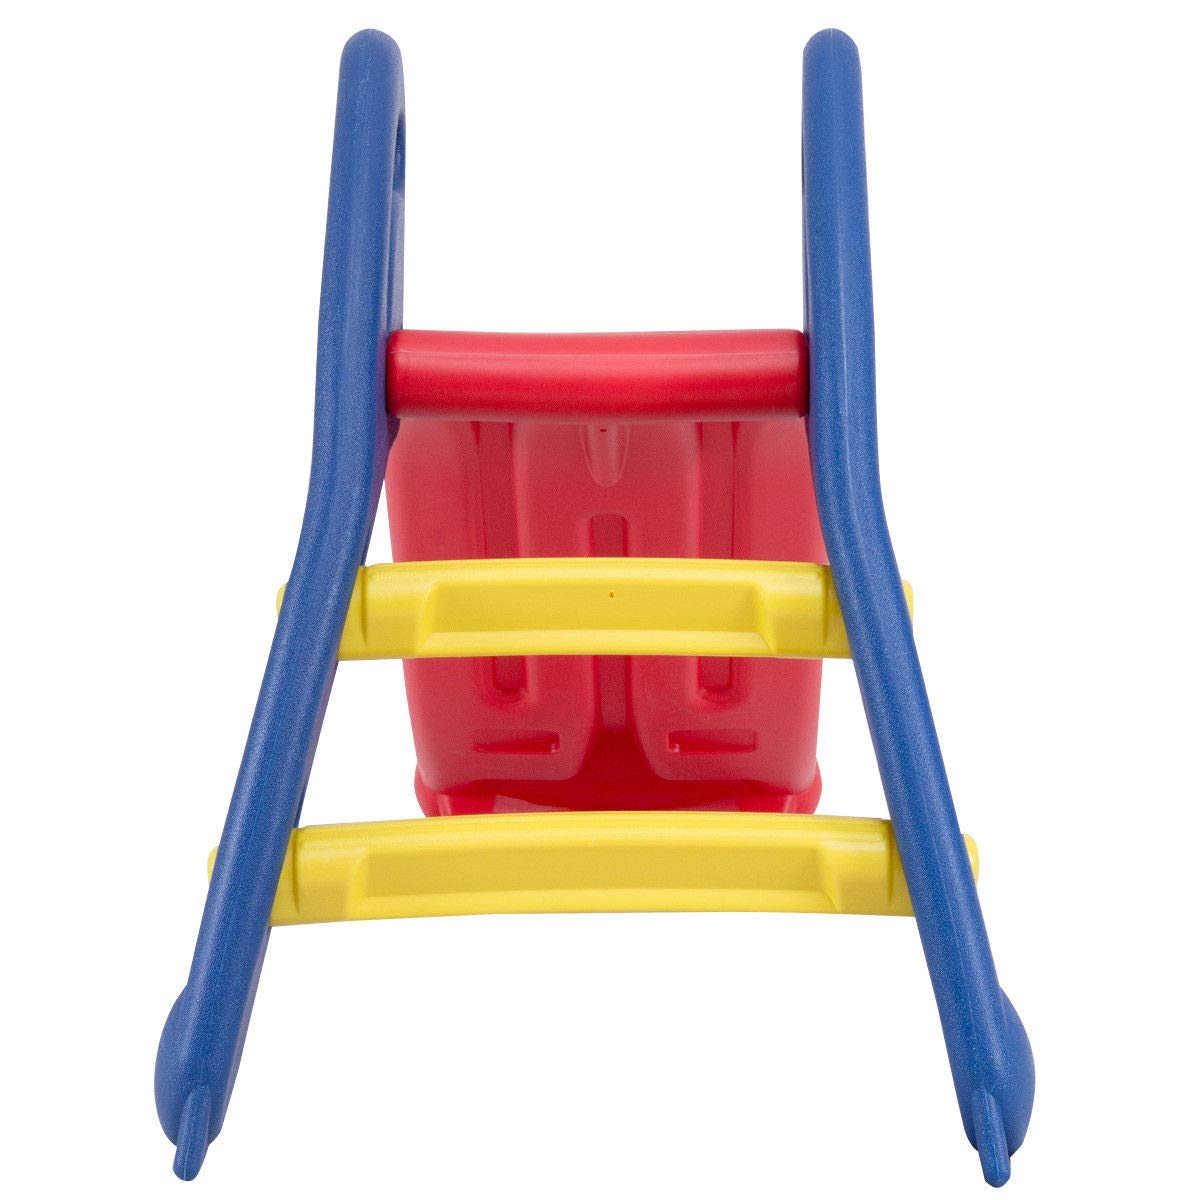 Heavens Tvcz Slide Plastic Folding Kids Fun Toy Up-Down Children Play Fun Step Rails Toddler Big High Side Portable Outdoor Indoor by Heavens Tvcz (Image #4)